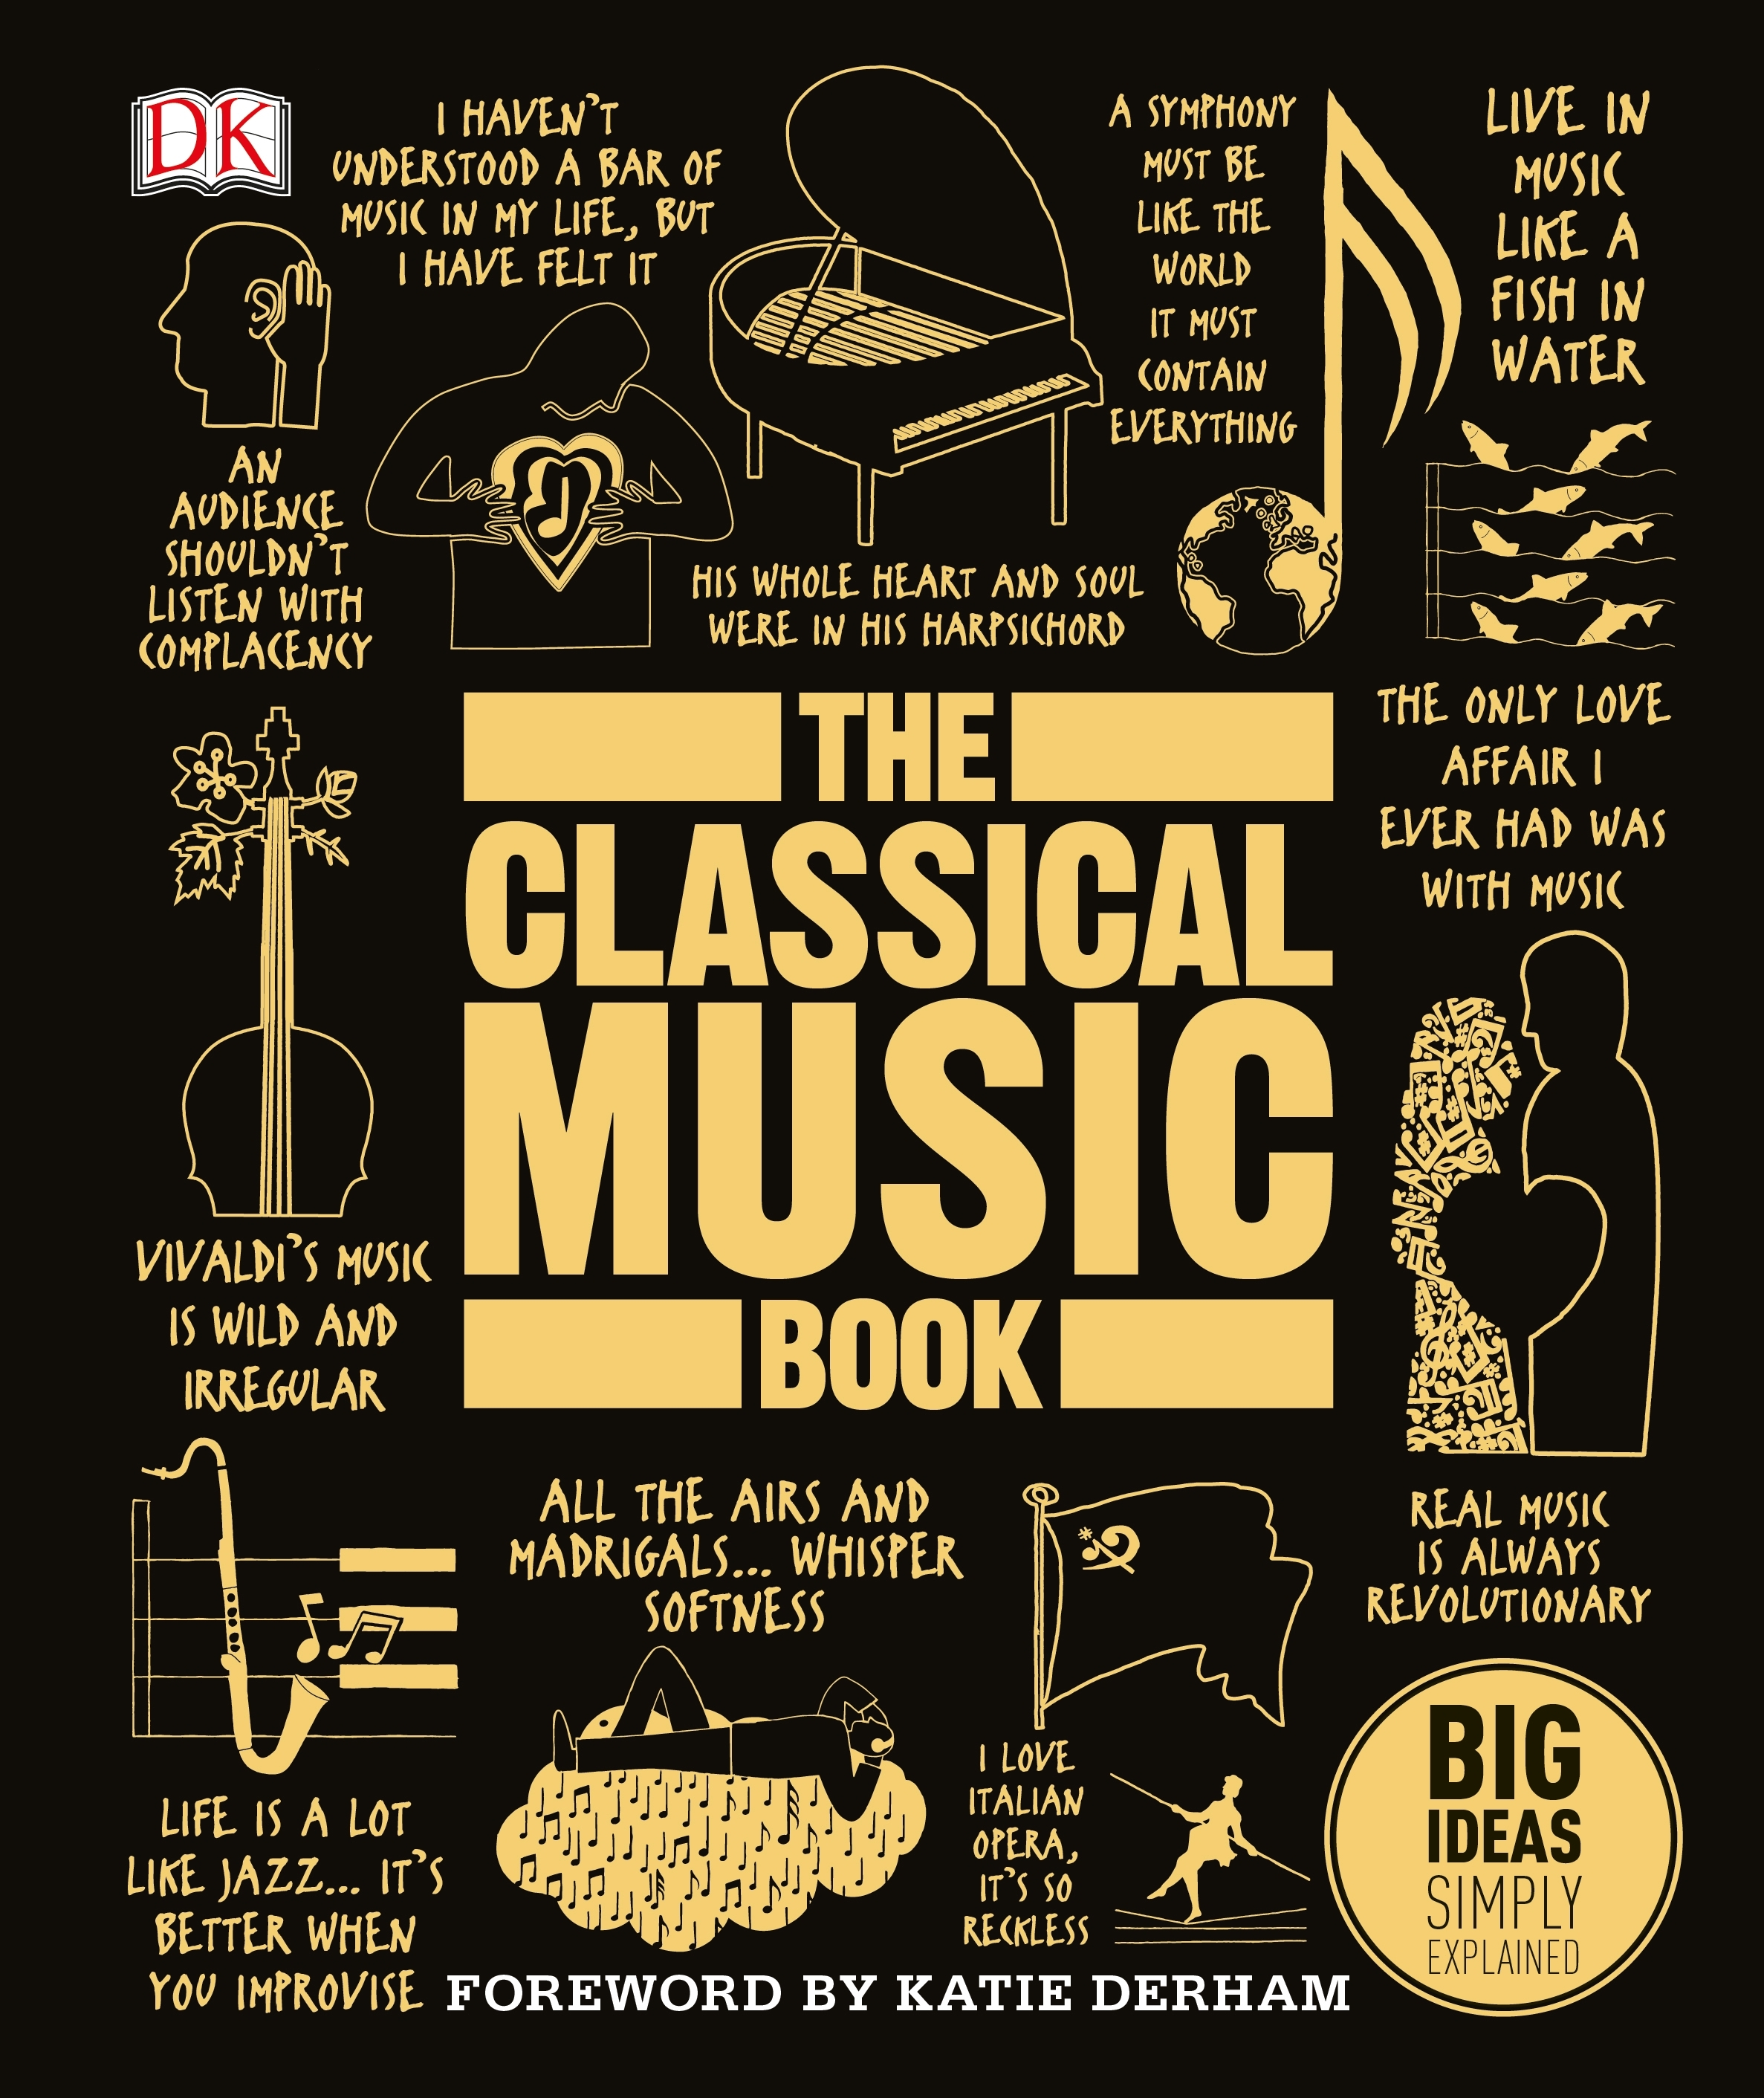 The Classical Music Book: Big Ideas Simply Explained by DK, ISBN: 9780241301975